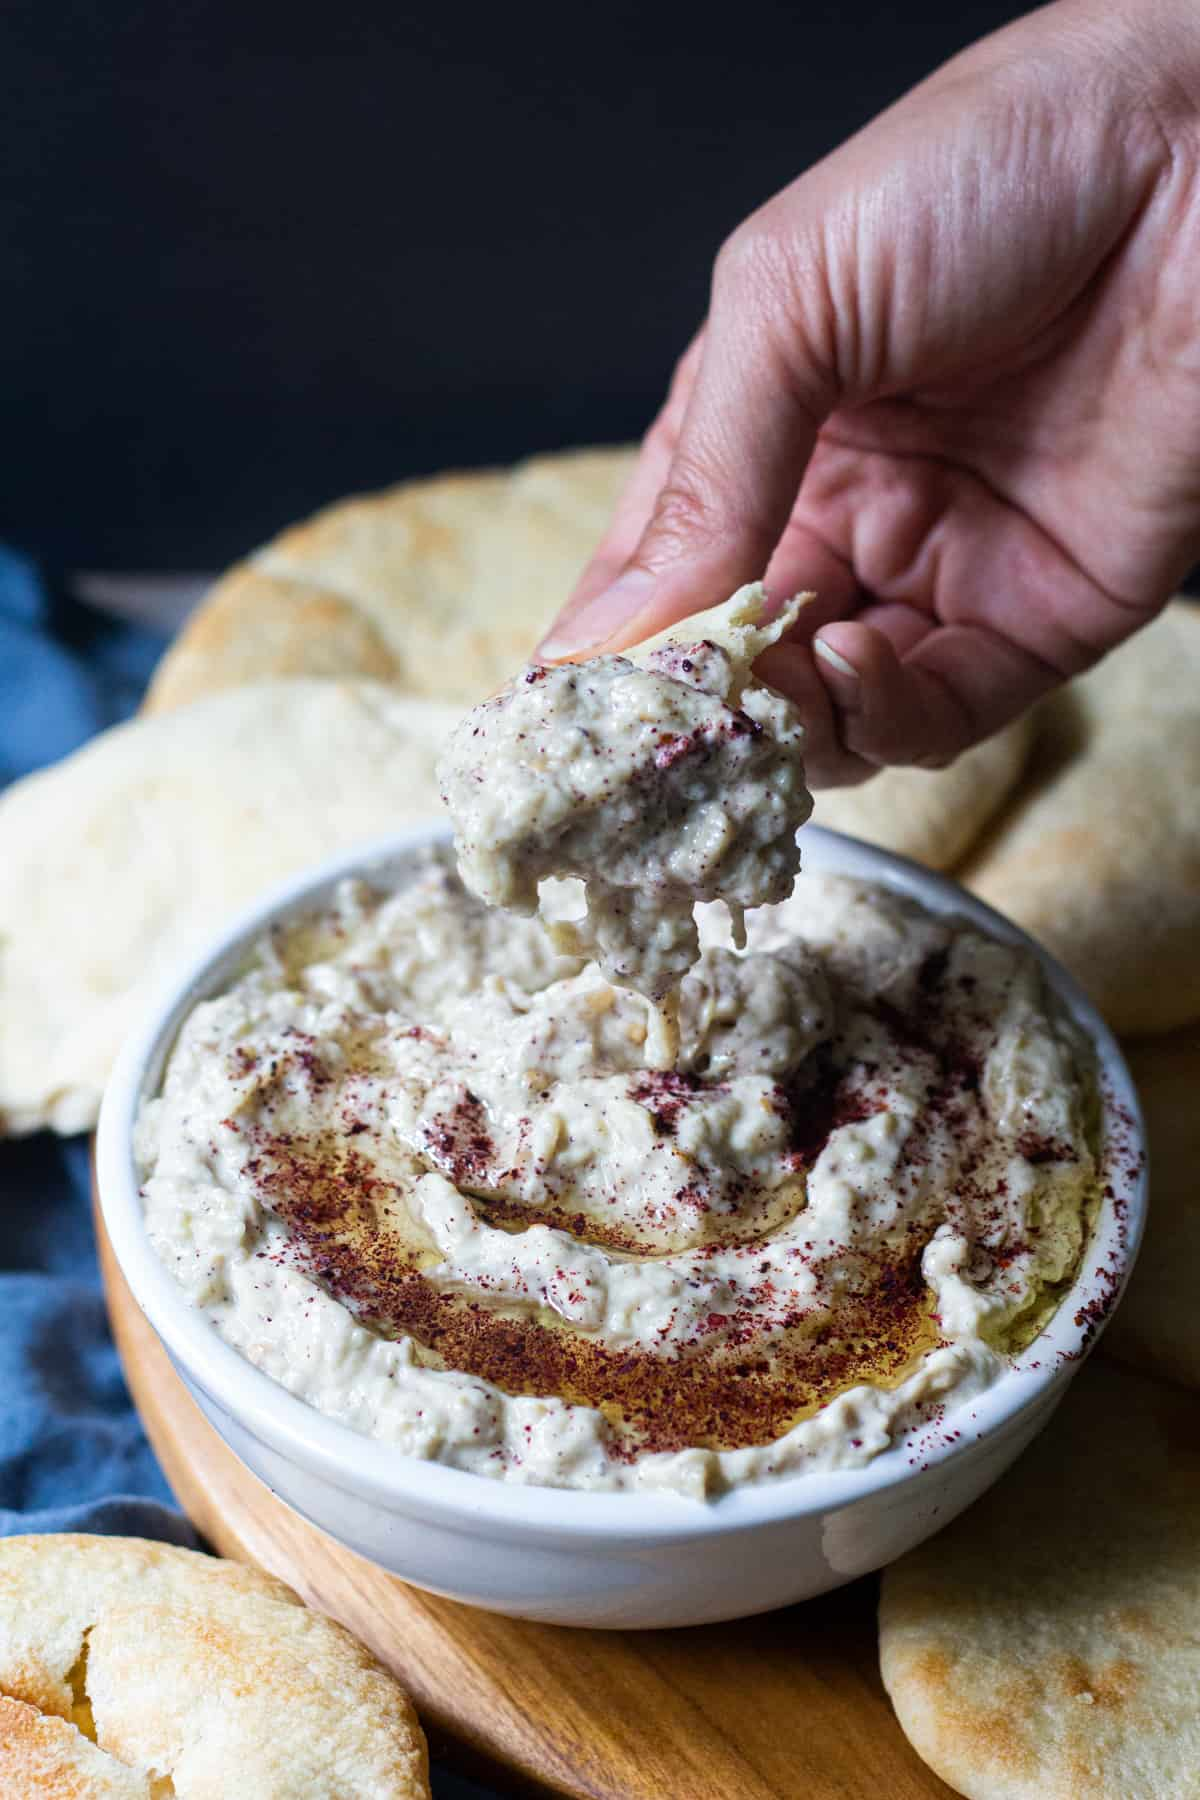 You can serve this dish with pita bread.